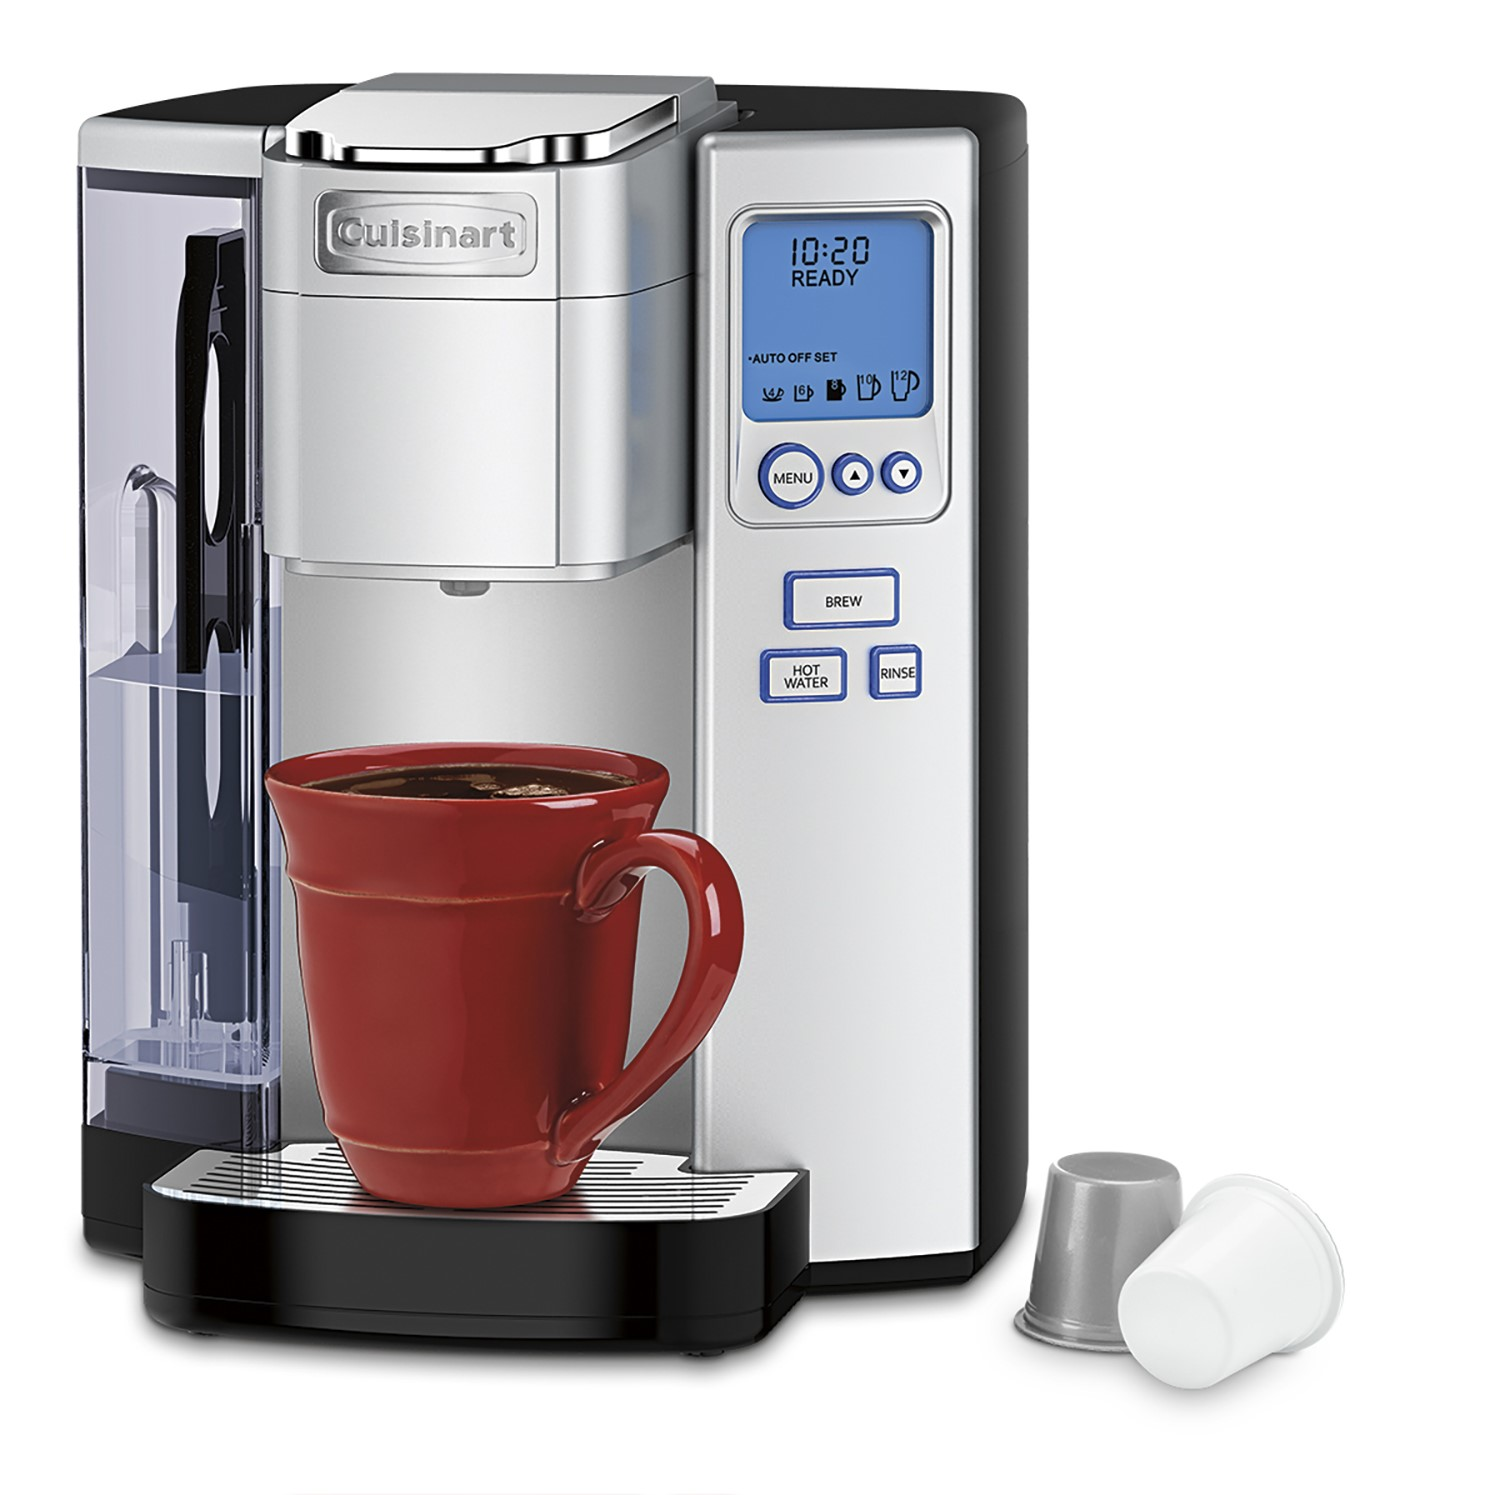 Cuisinart SS700 Single Serve Brewing System Silver Powered by